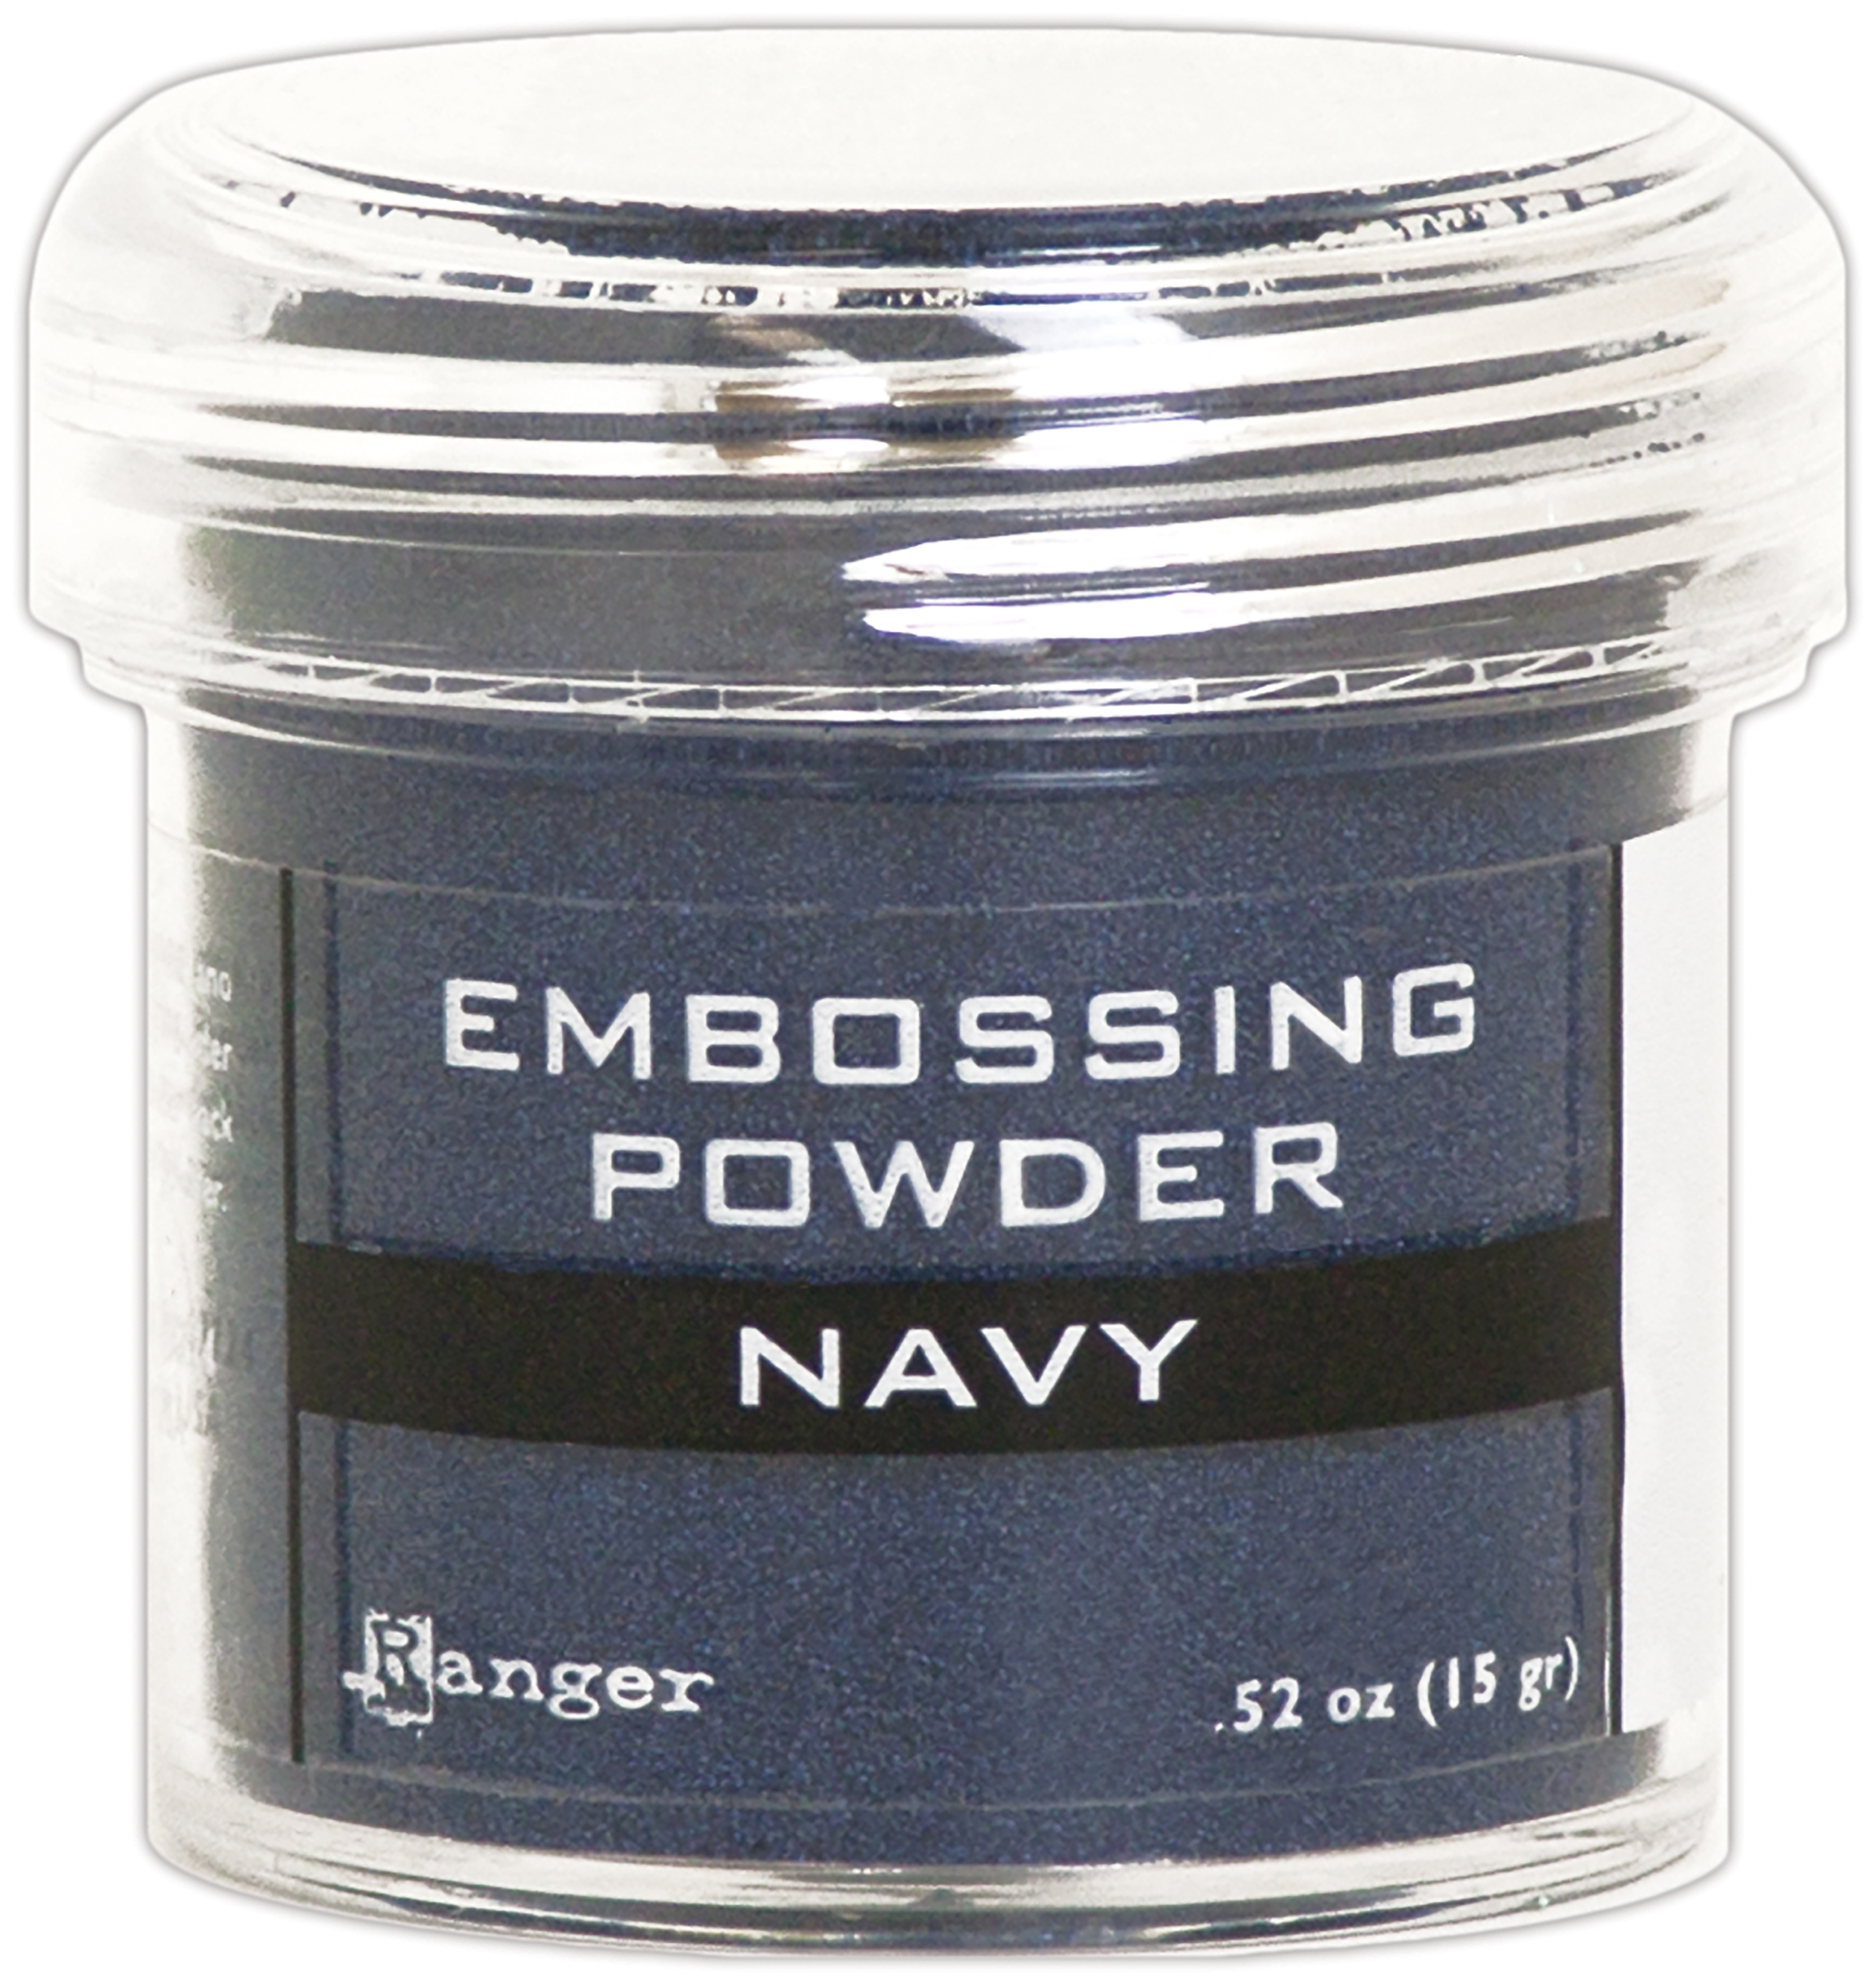 NAVY METLL-EMBOSSING POWDER